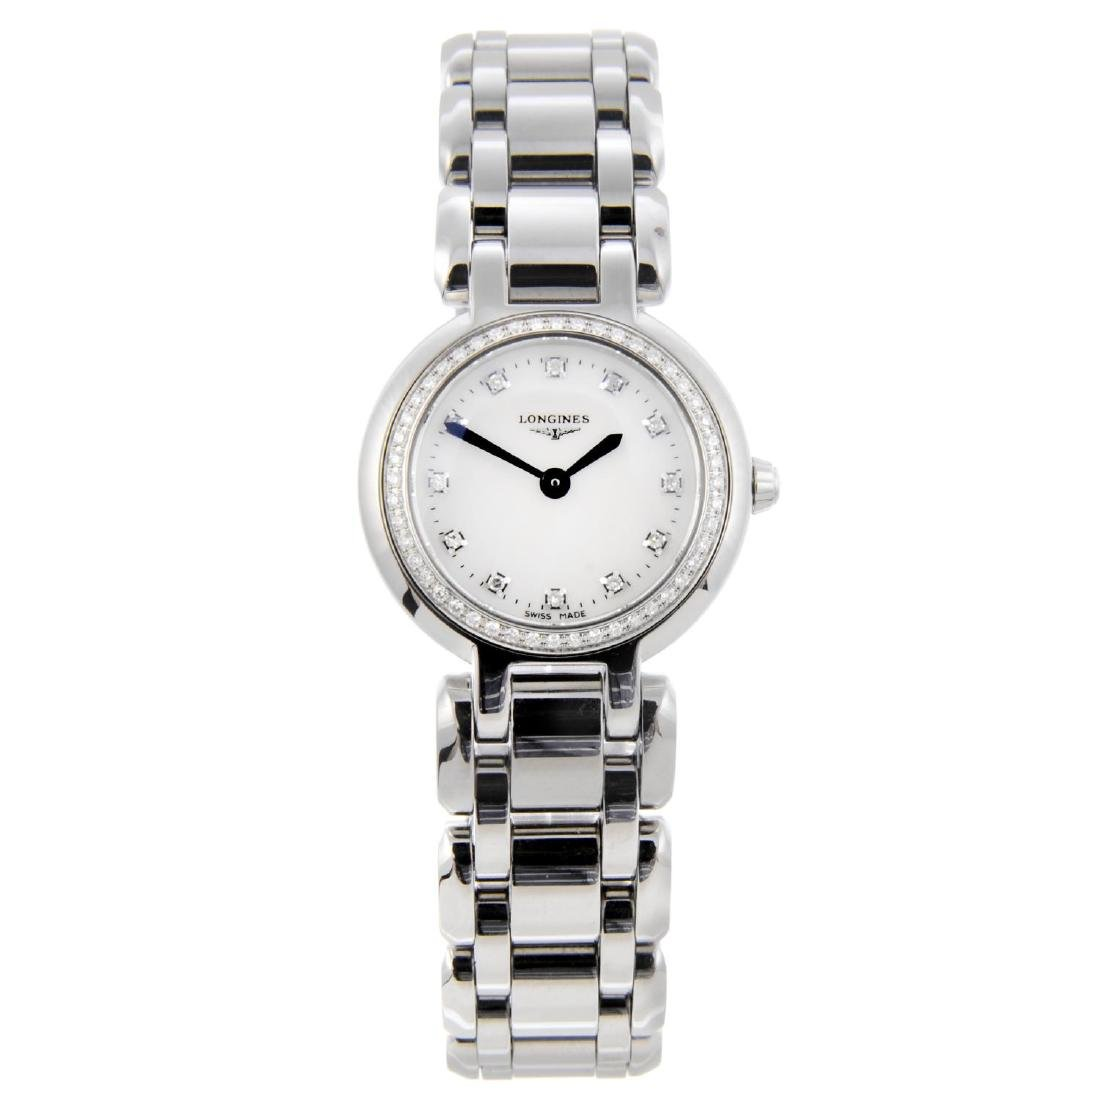 LONGINES - a lady's PrimaLuna bracelet watch. Stainless